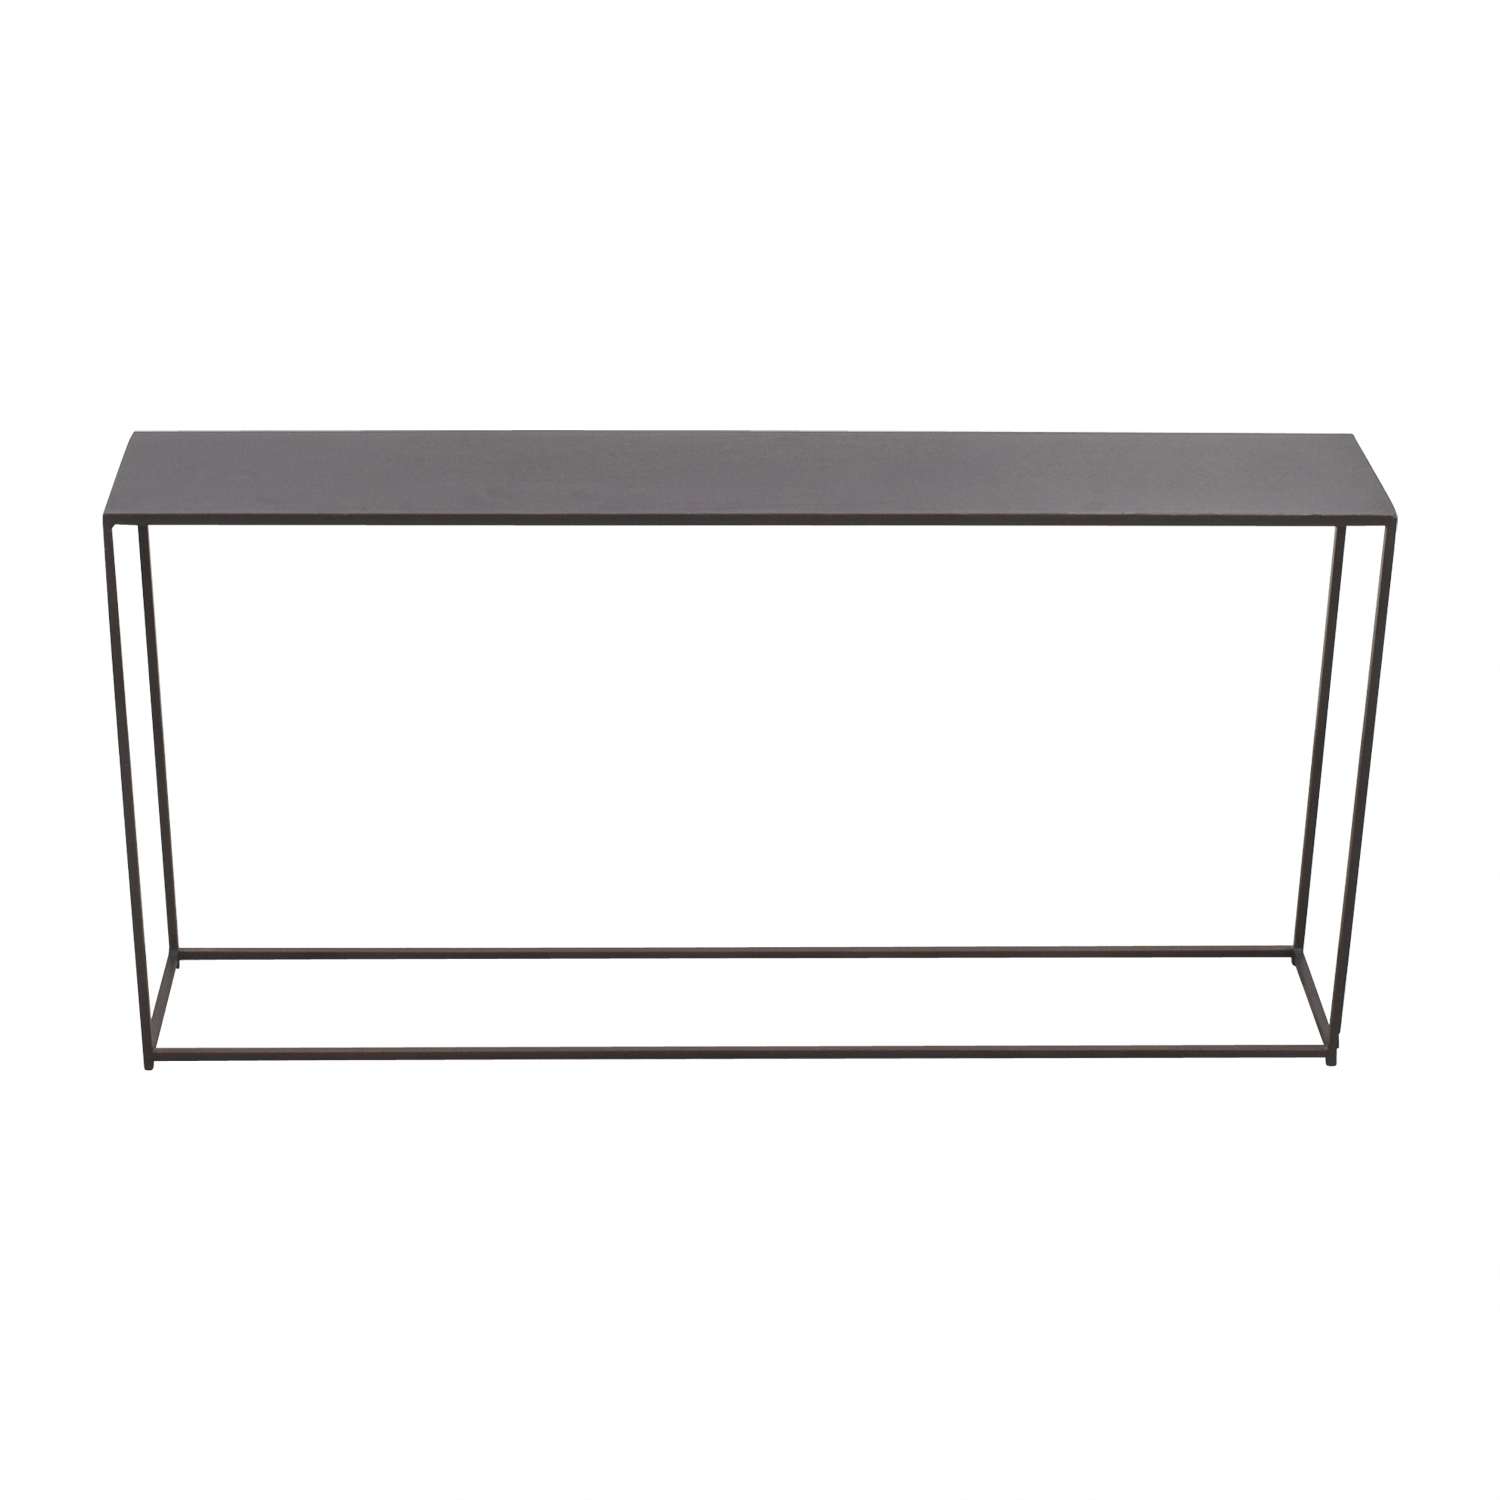 CB2 CB2 Mill Narrow Console Table for sale